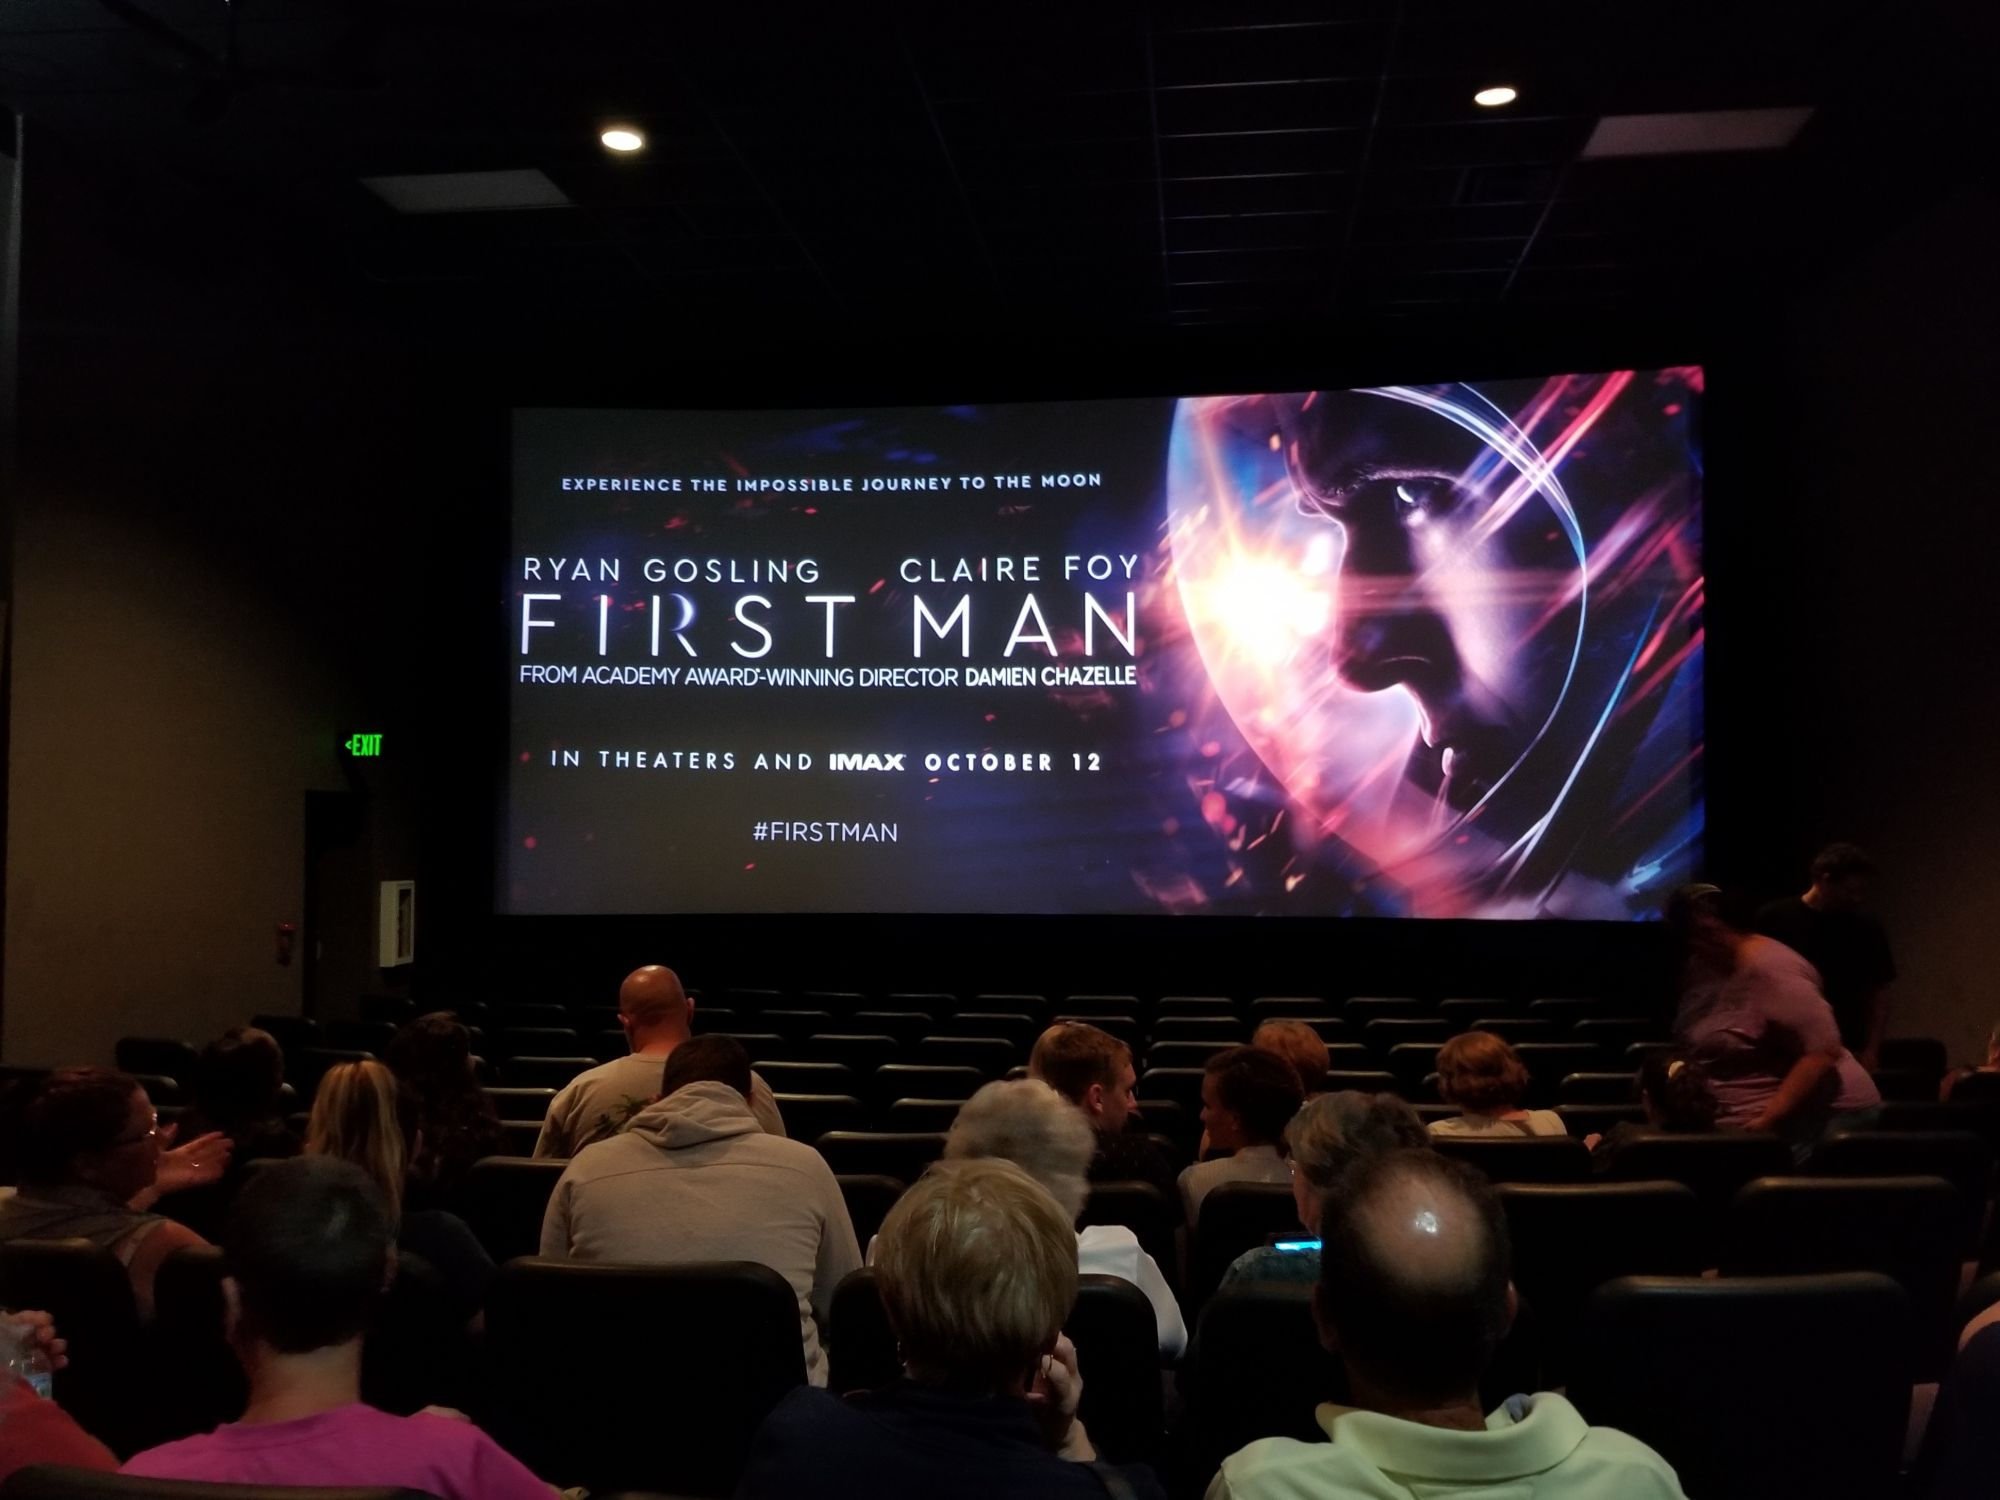 First Man Movie – The Exclusive Pre-Screening Event